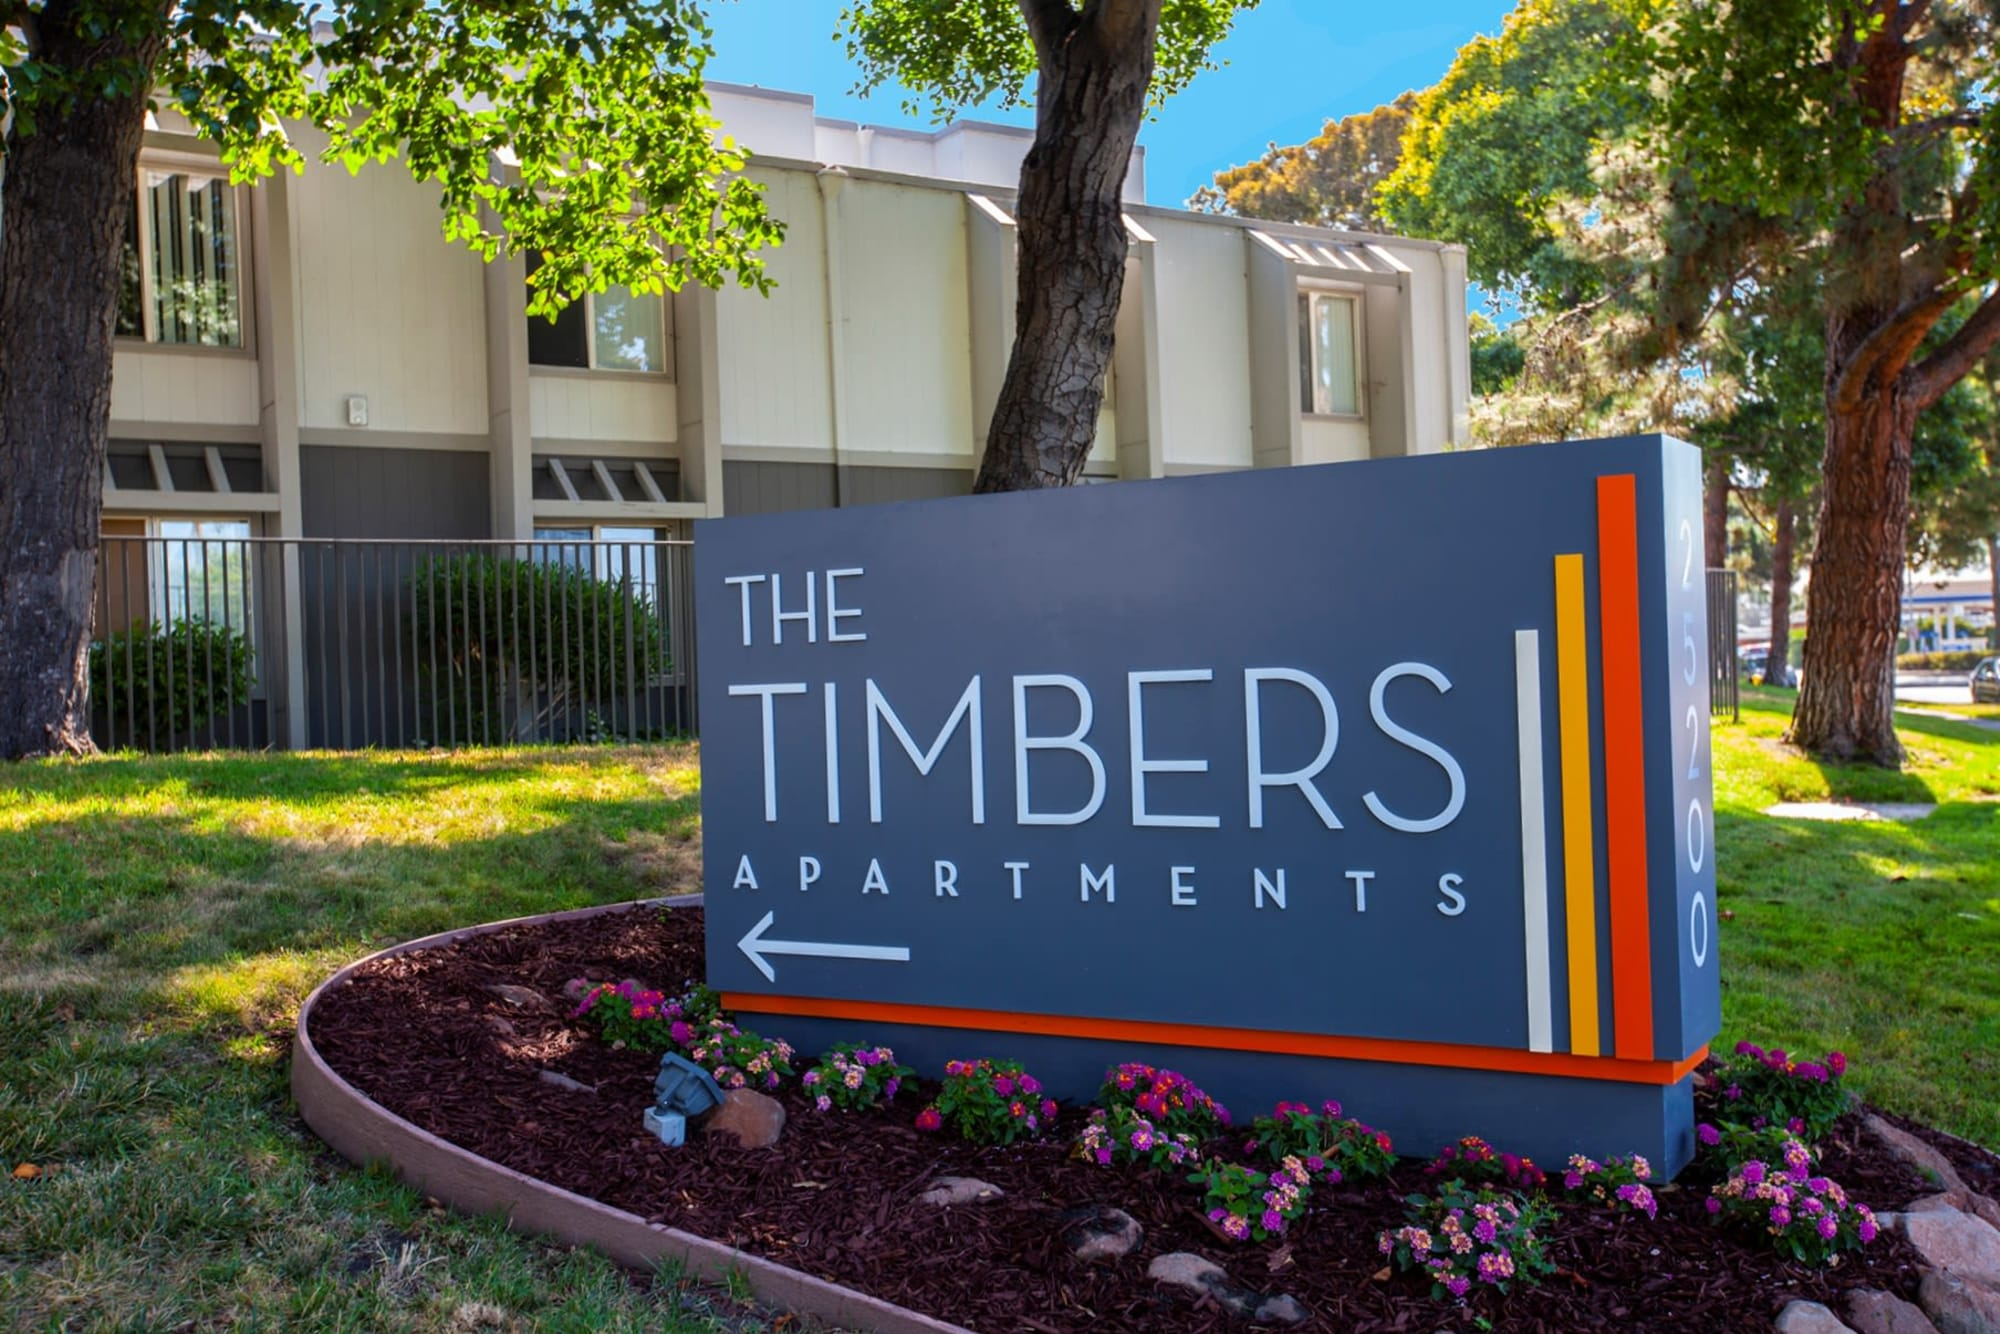 Monument sign at The Timbers Apartments in Hayward, California